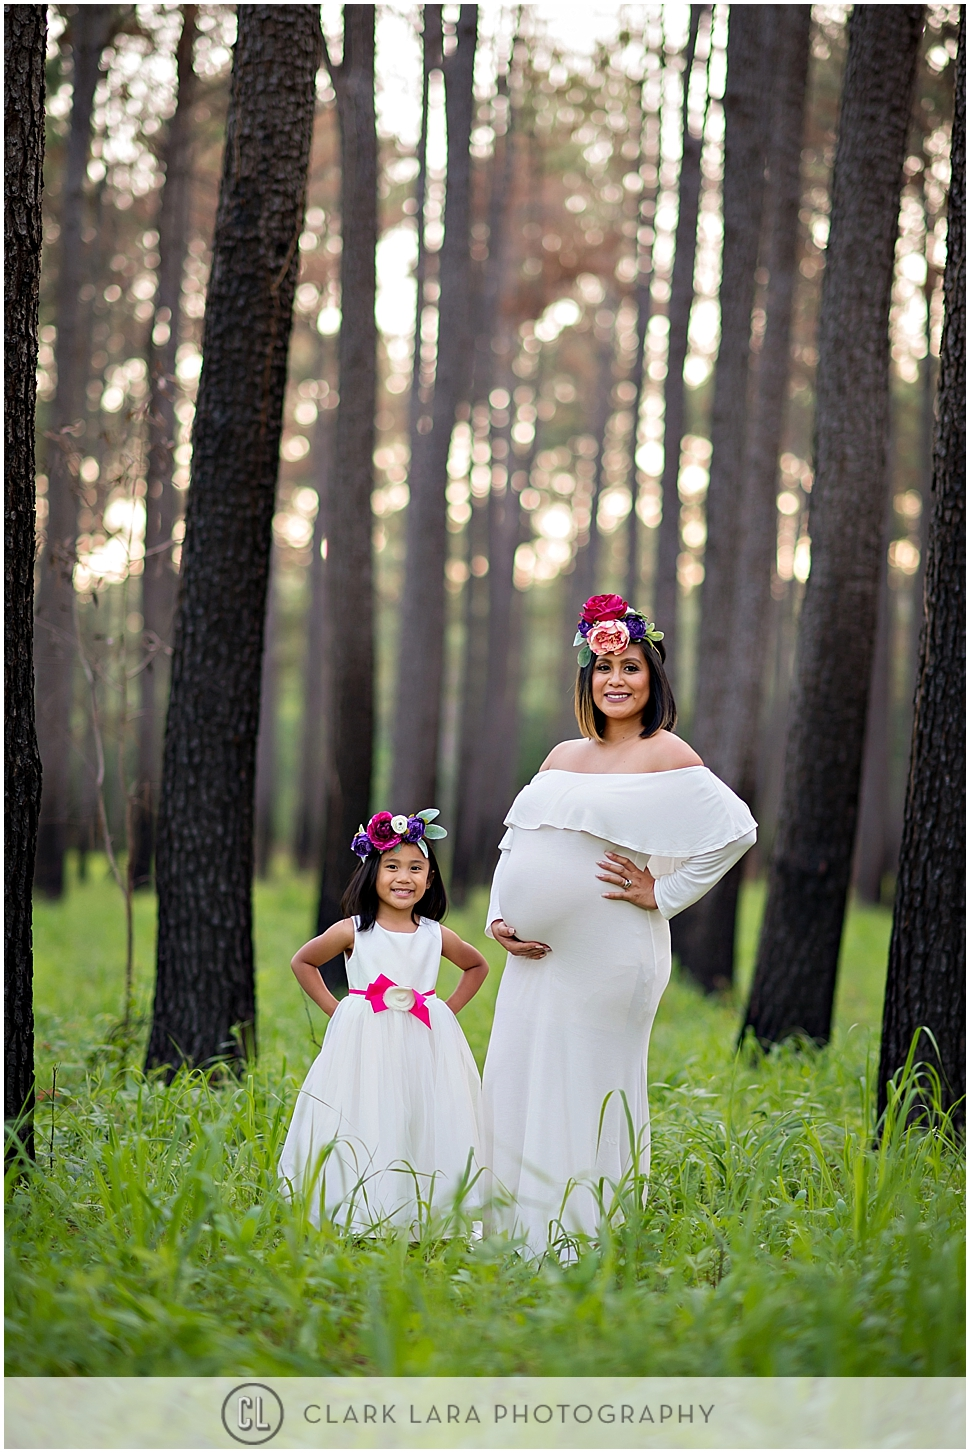 woodlands-family-maternity-photography-tua_0009.jpg